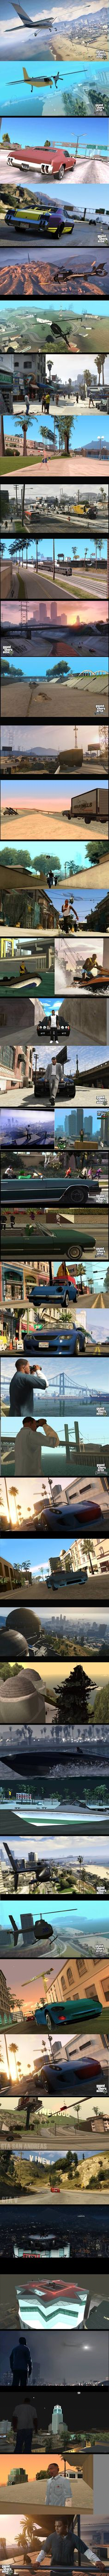 GTA San Andreas vs GTA V